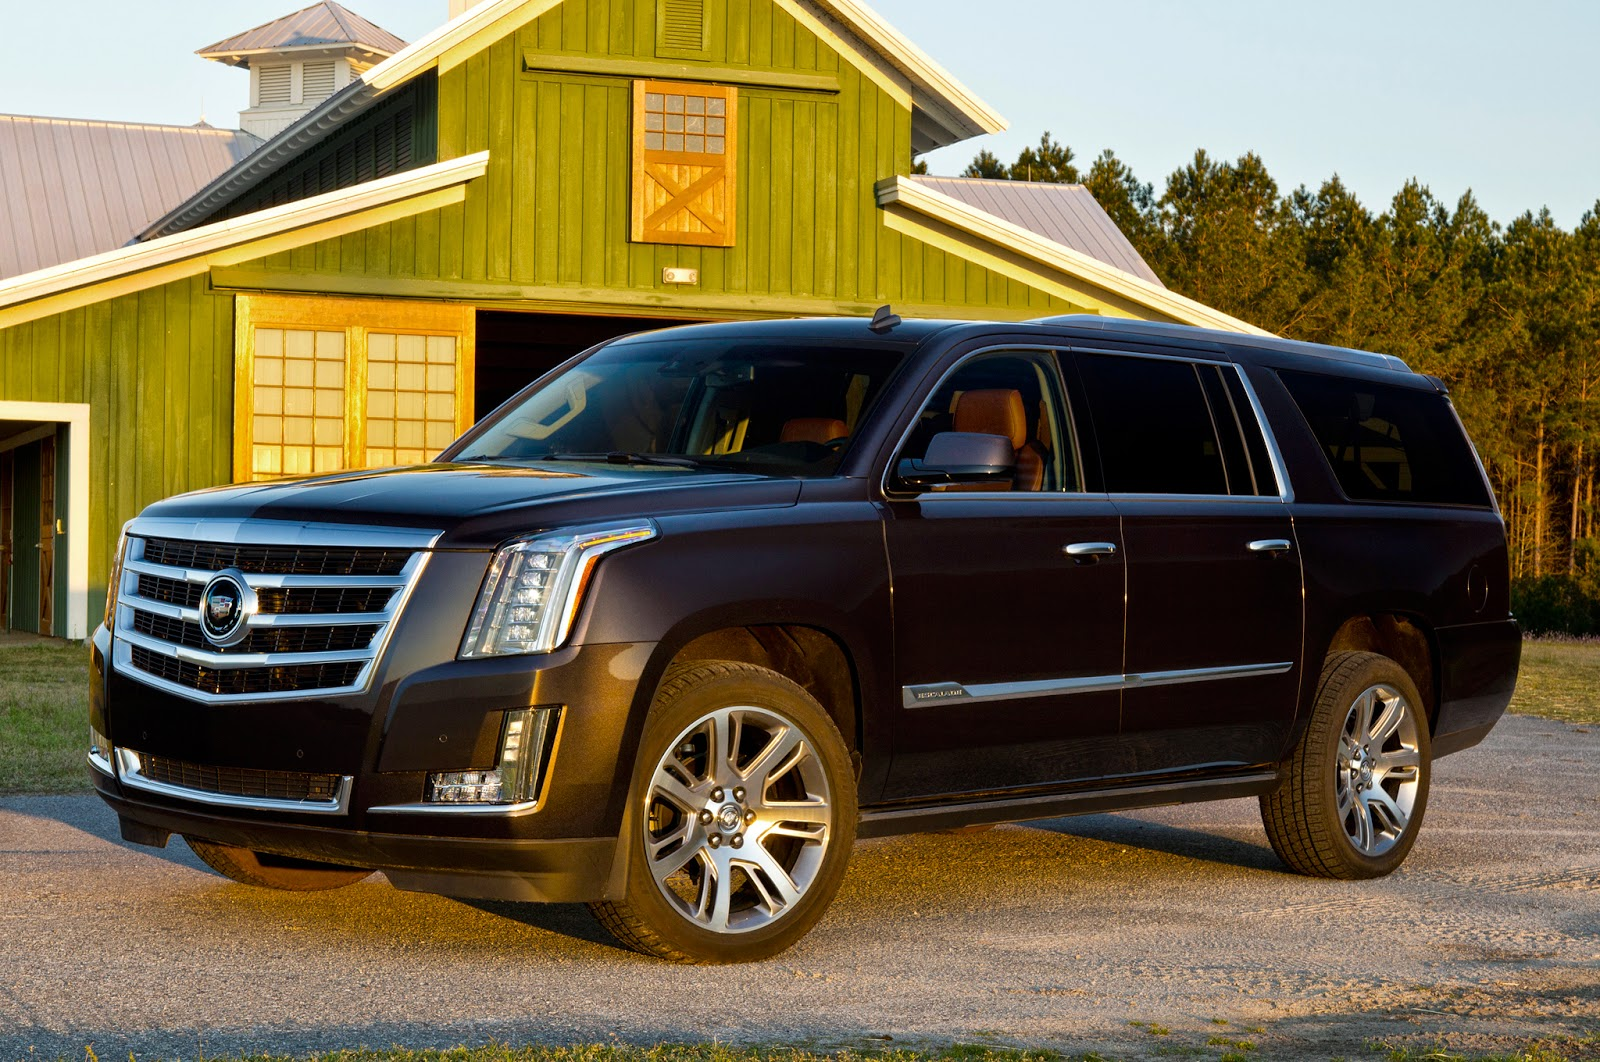 2015 cadillac escalade release autos post. Black Bedroom Furniture Sets. Home Design Ideas